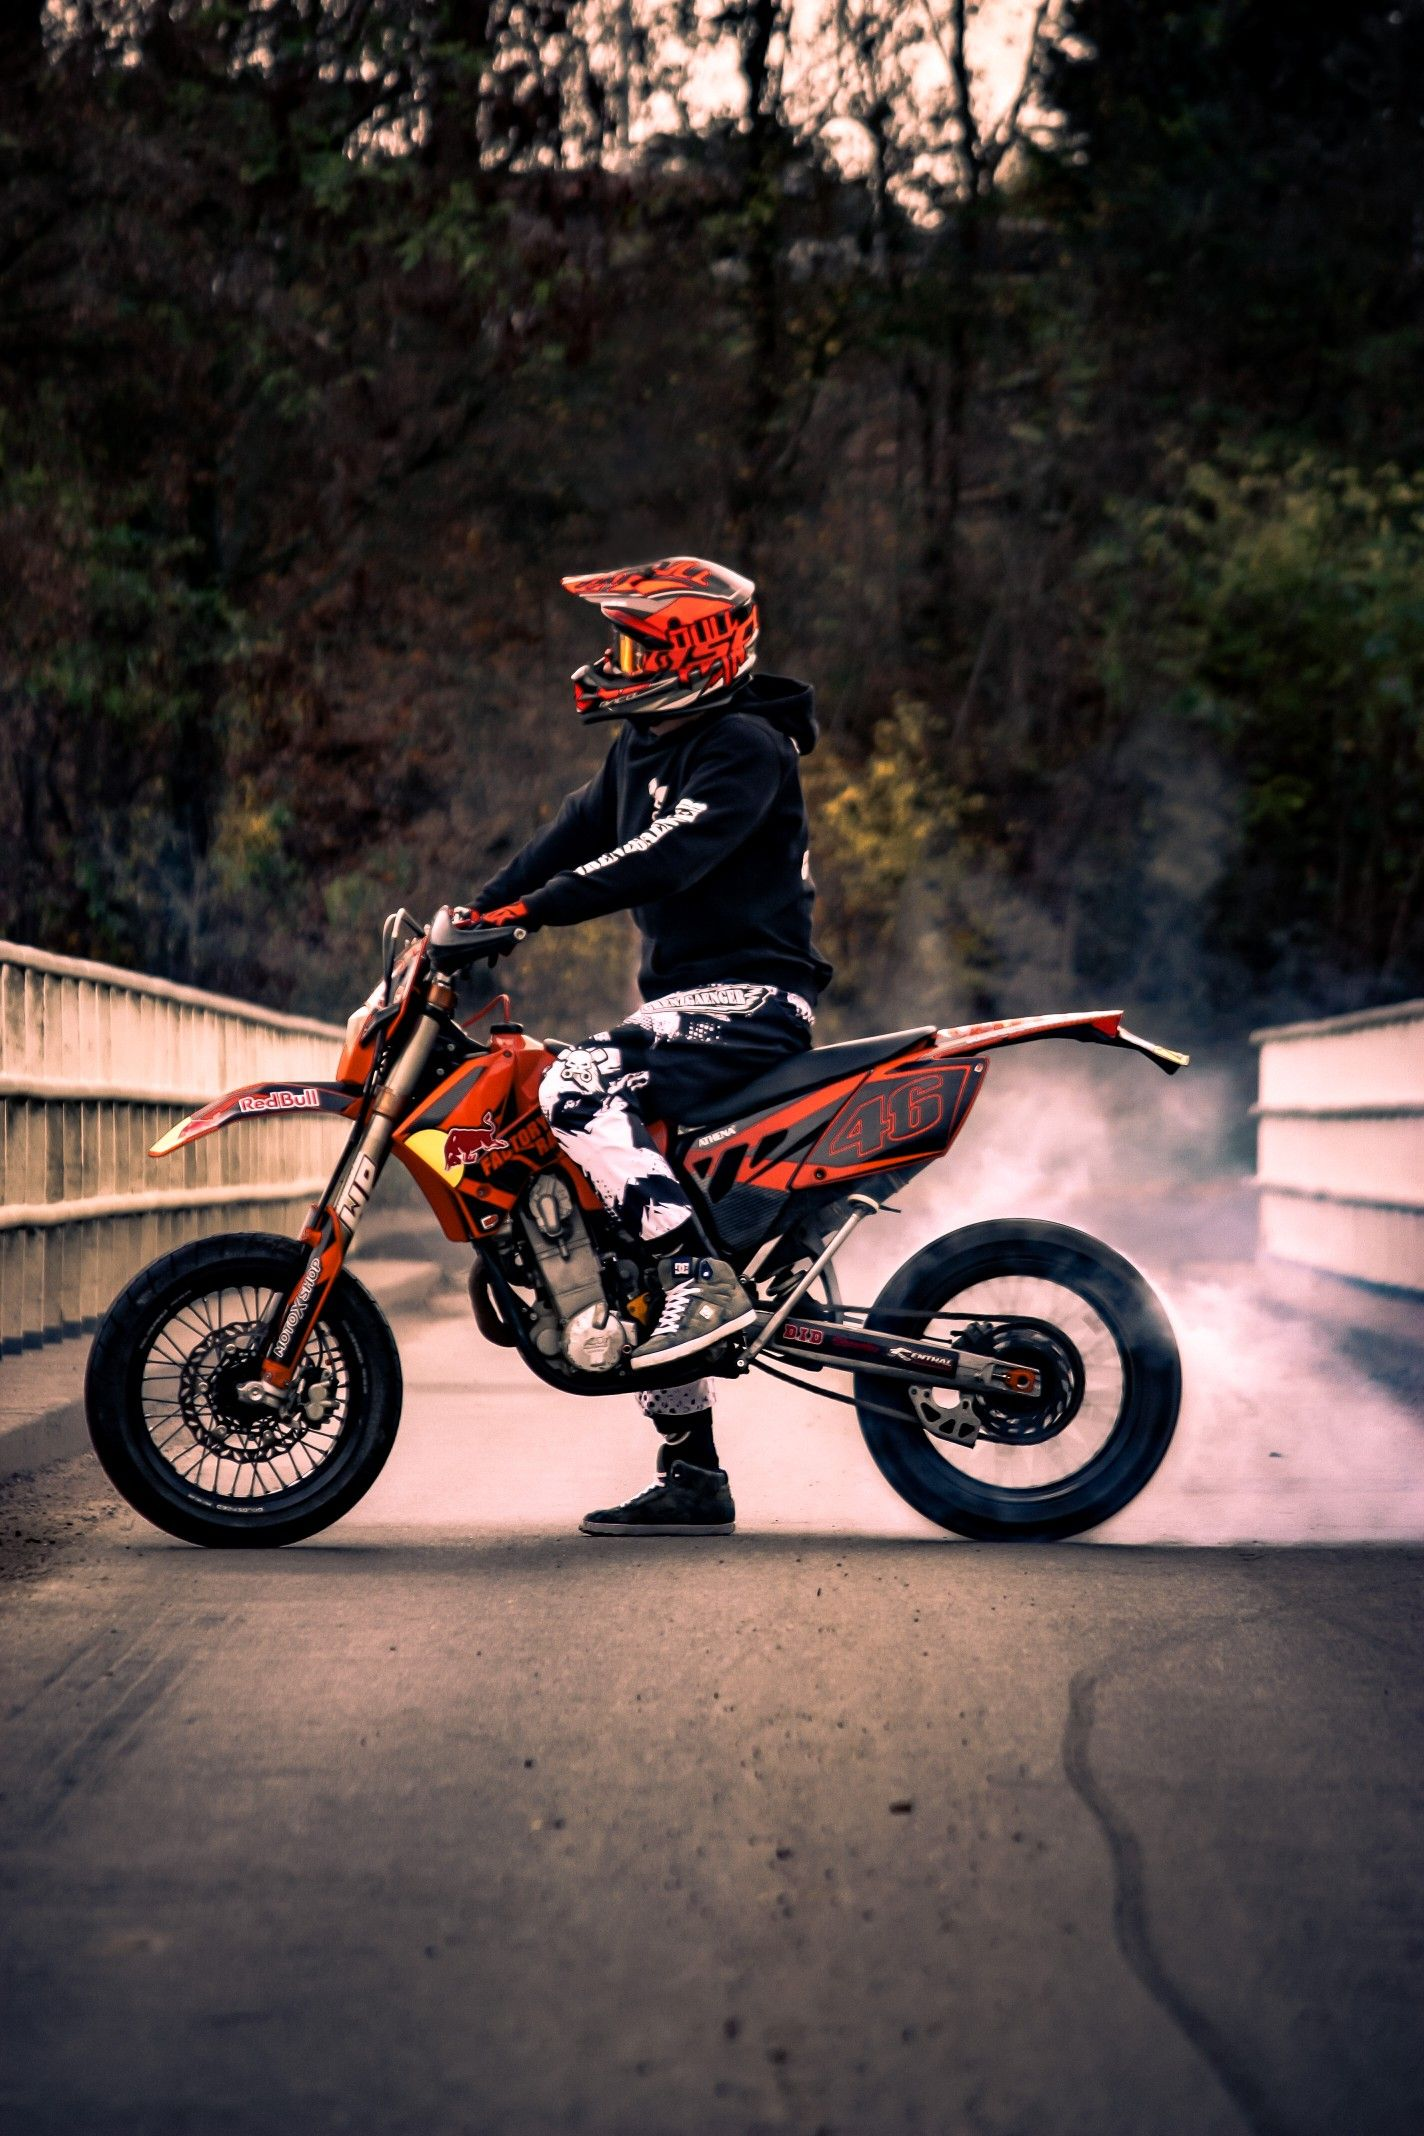 Pin By Alex Dukaj On Motorcycles Ktm Dirt Bikes Ktm Motocross